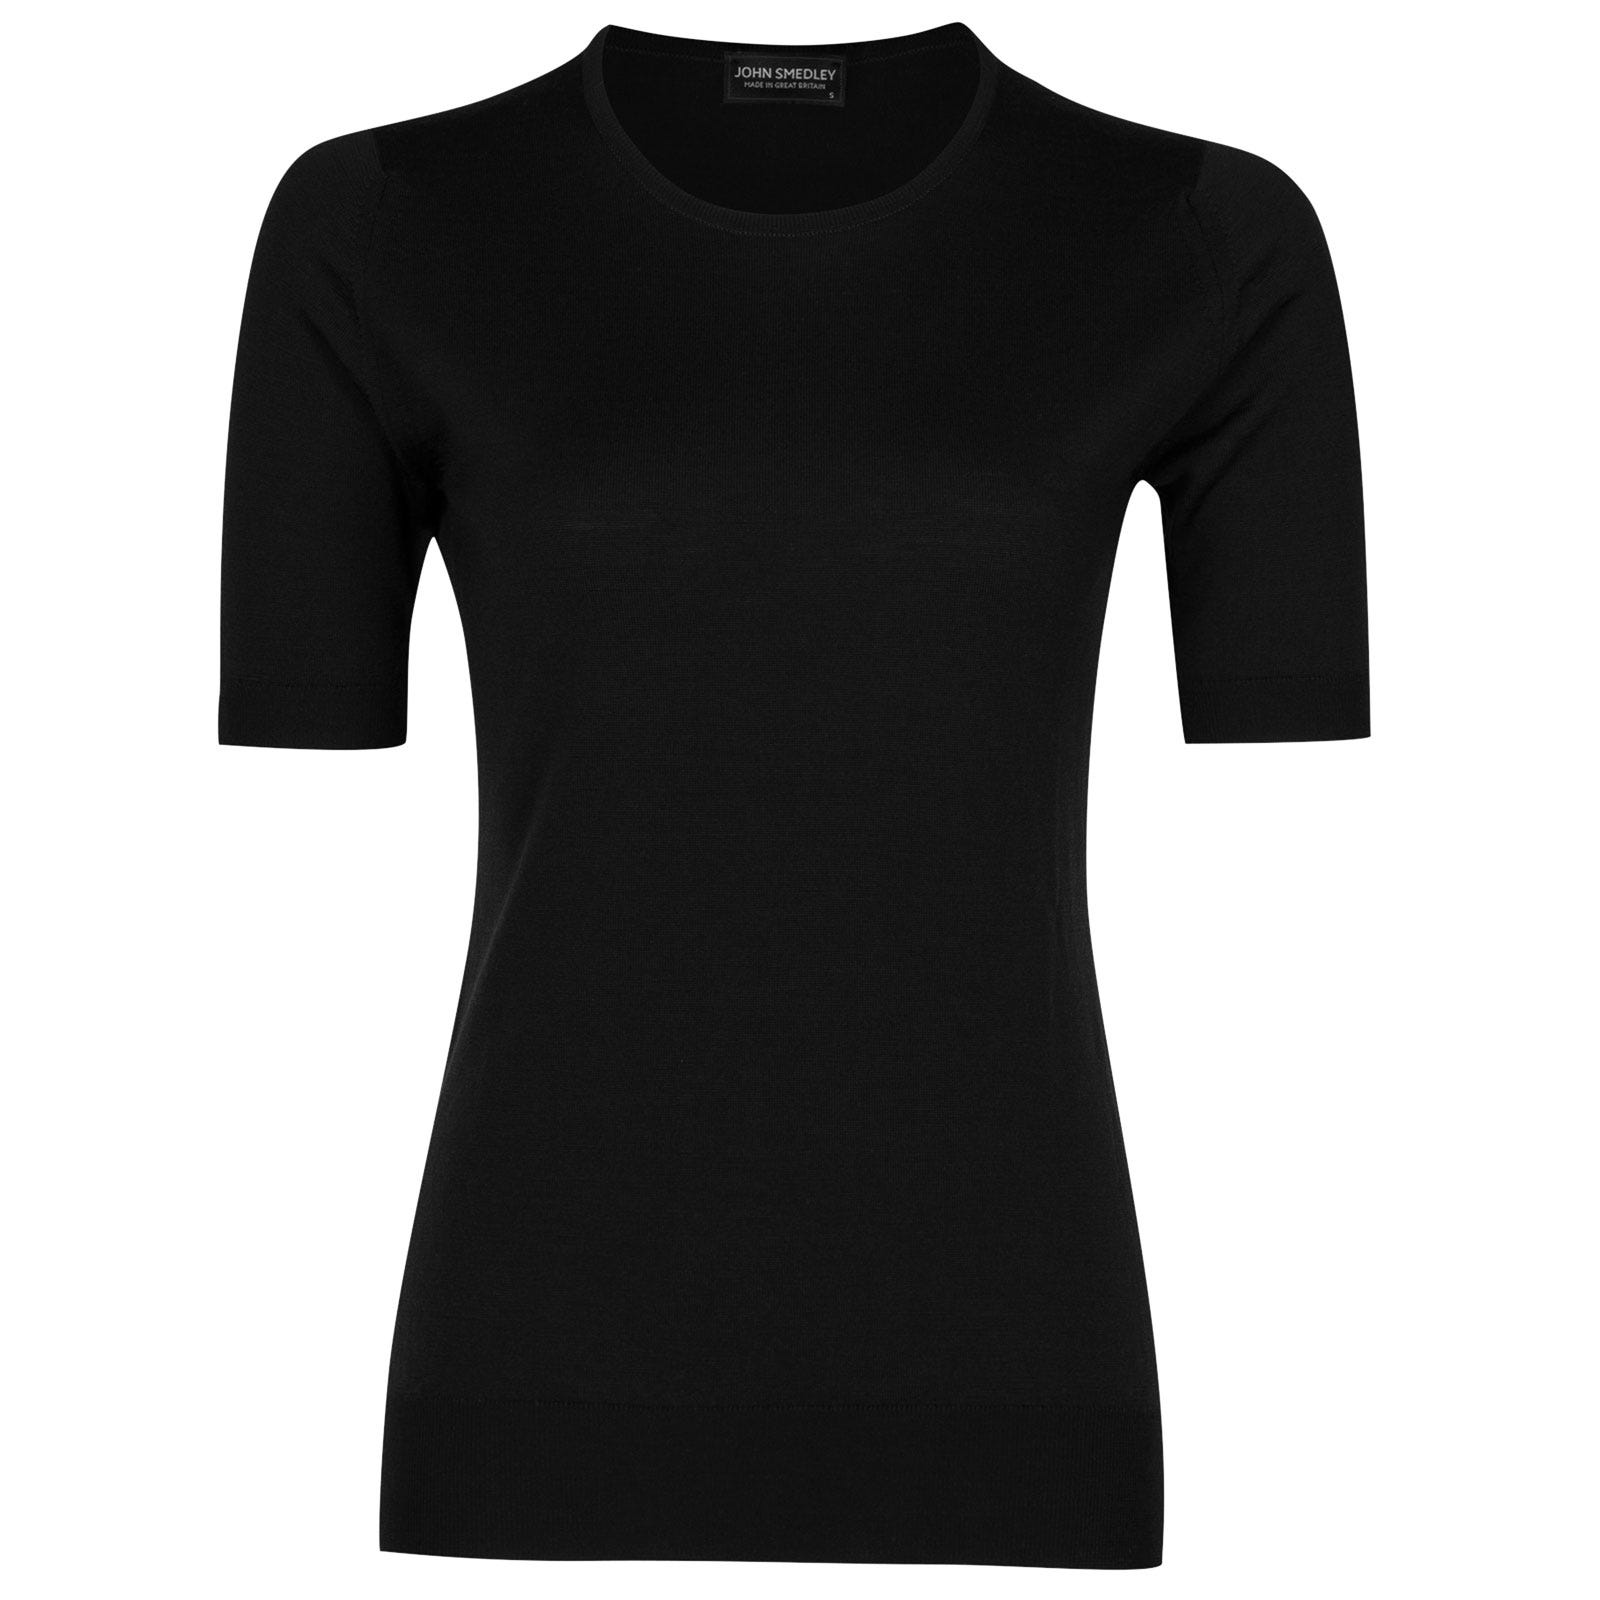 John Smedley rietta Merino Wool Sweater in Black-XL